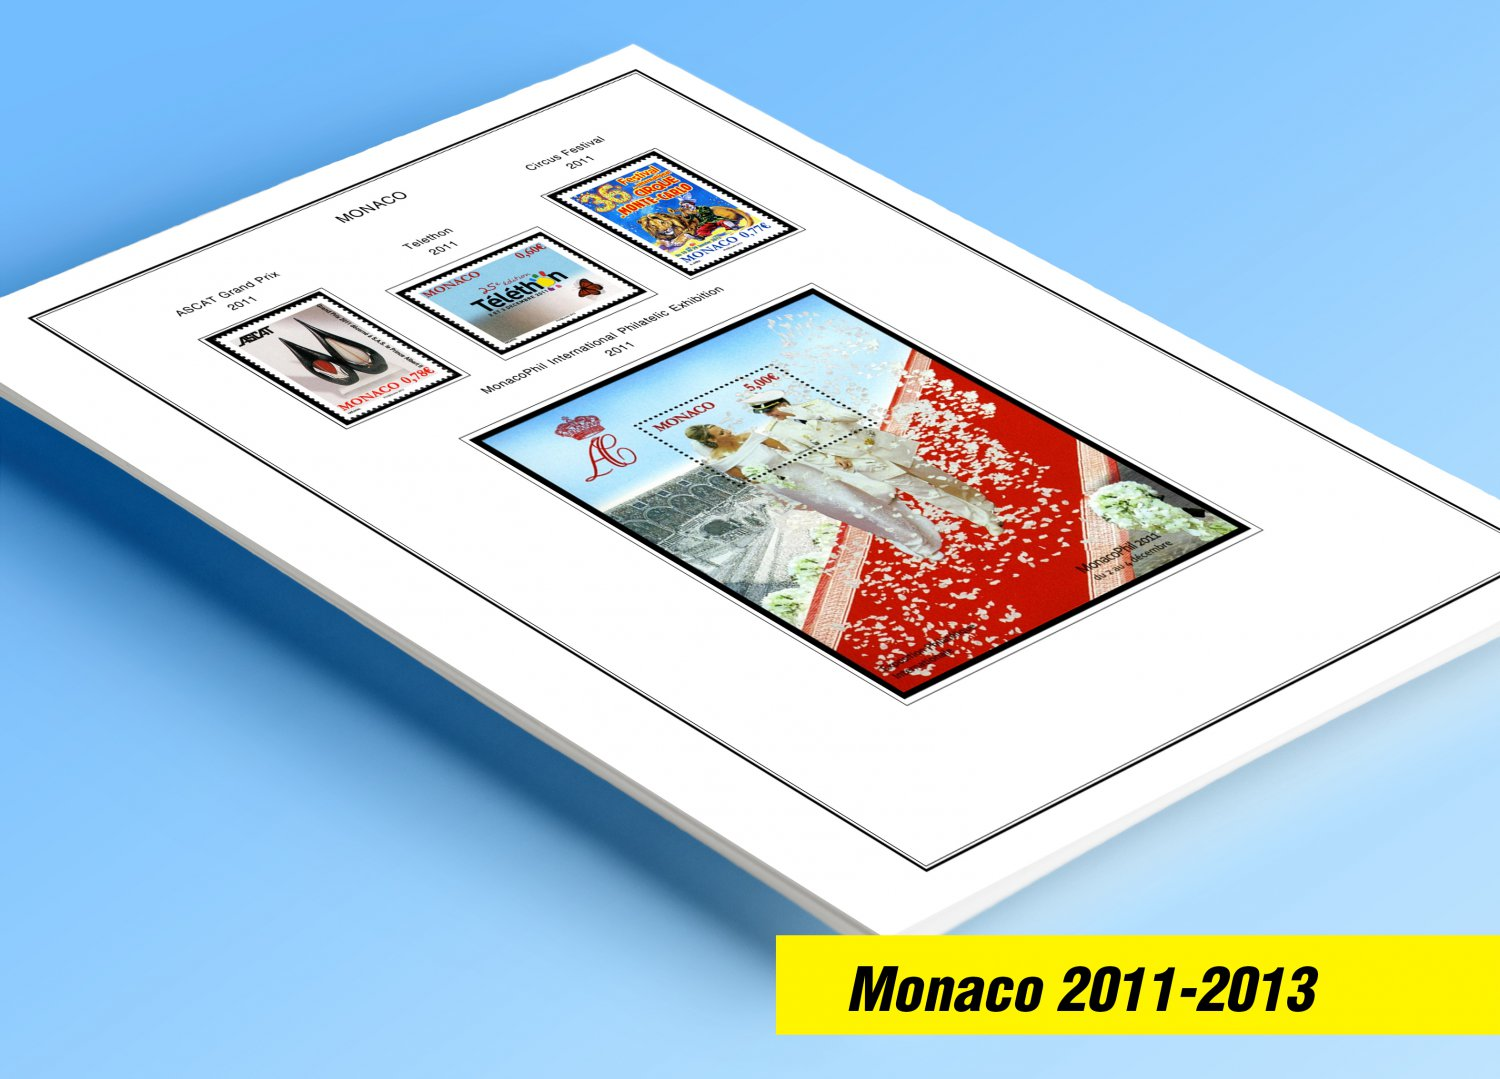 COLOR PRINTED MONACO 2011-2013 STAMP ALBUM PAGES (19 illustrated pages)